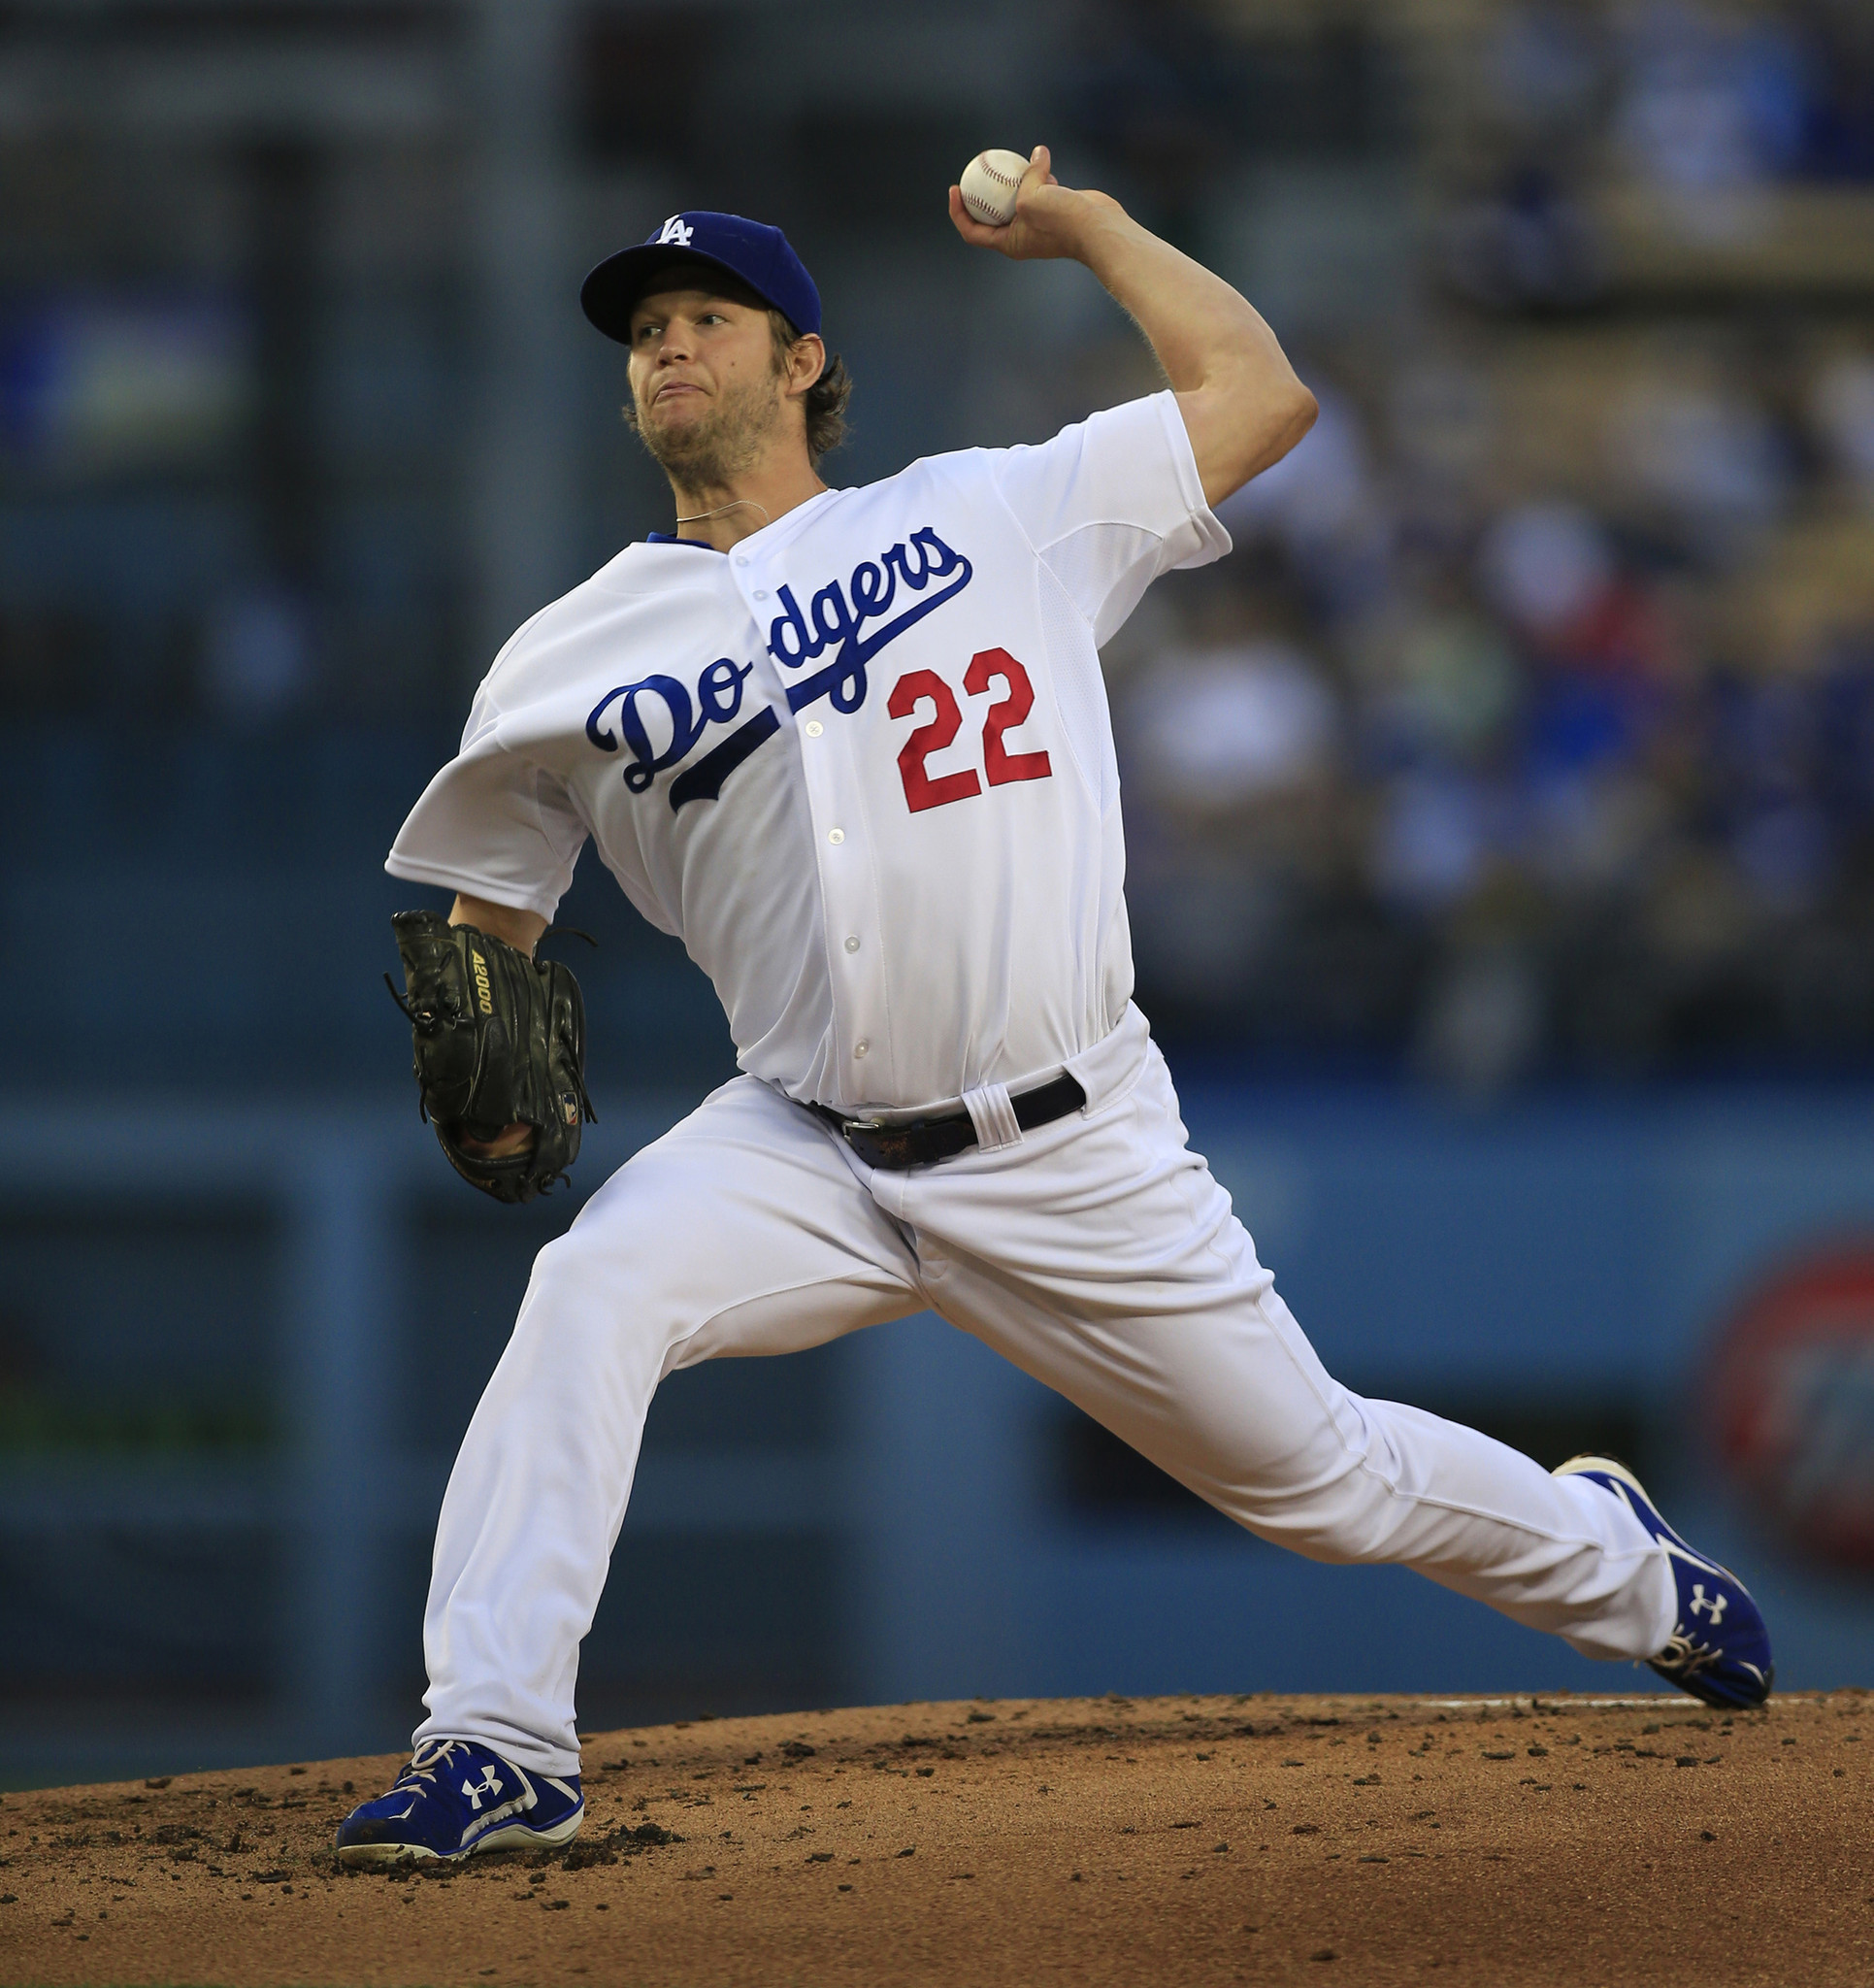 Recognize this? Clayton Kershaw dominates in Dodgers' 8-0 win